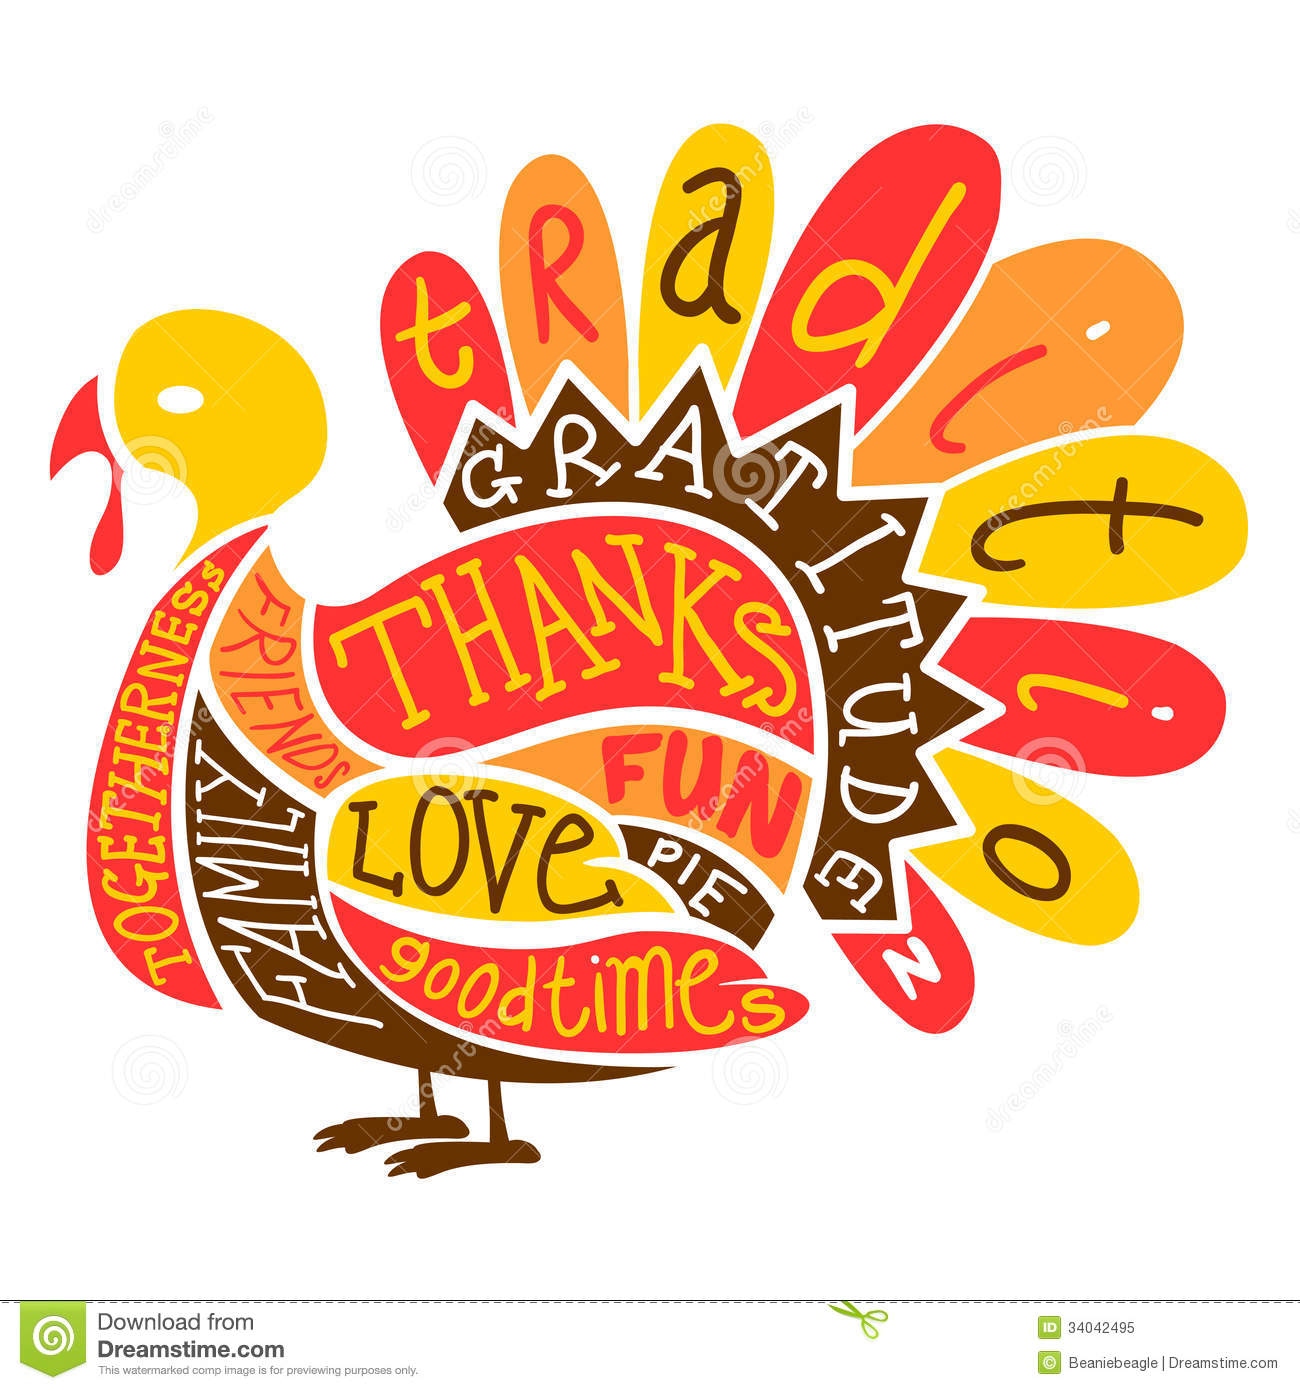 Free stock images clipart clip download Thanksgiving Turkey Royalty Free Stock Photo - Image: 34042495 clip download